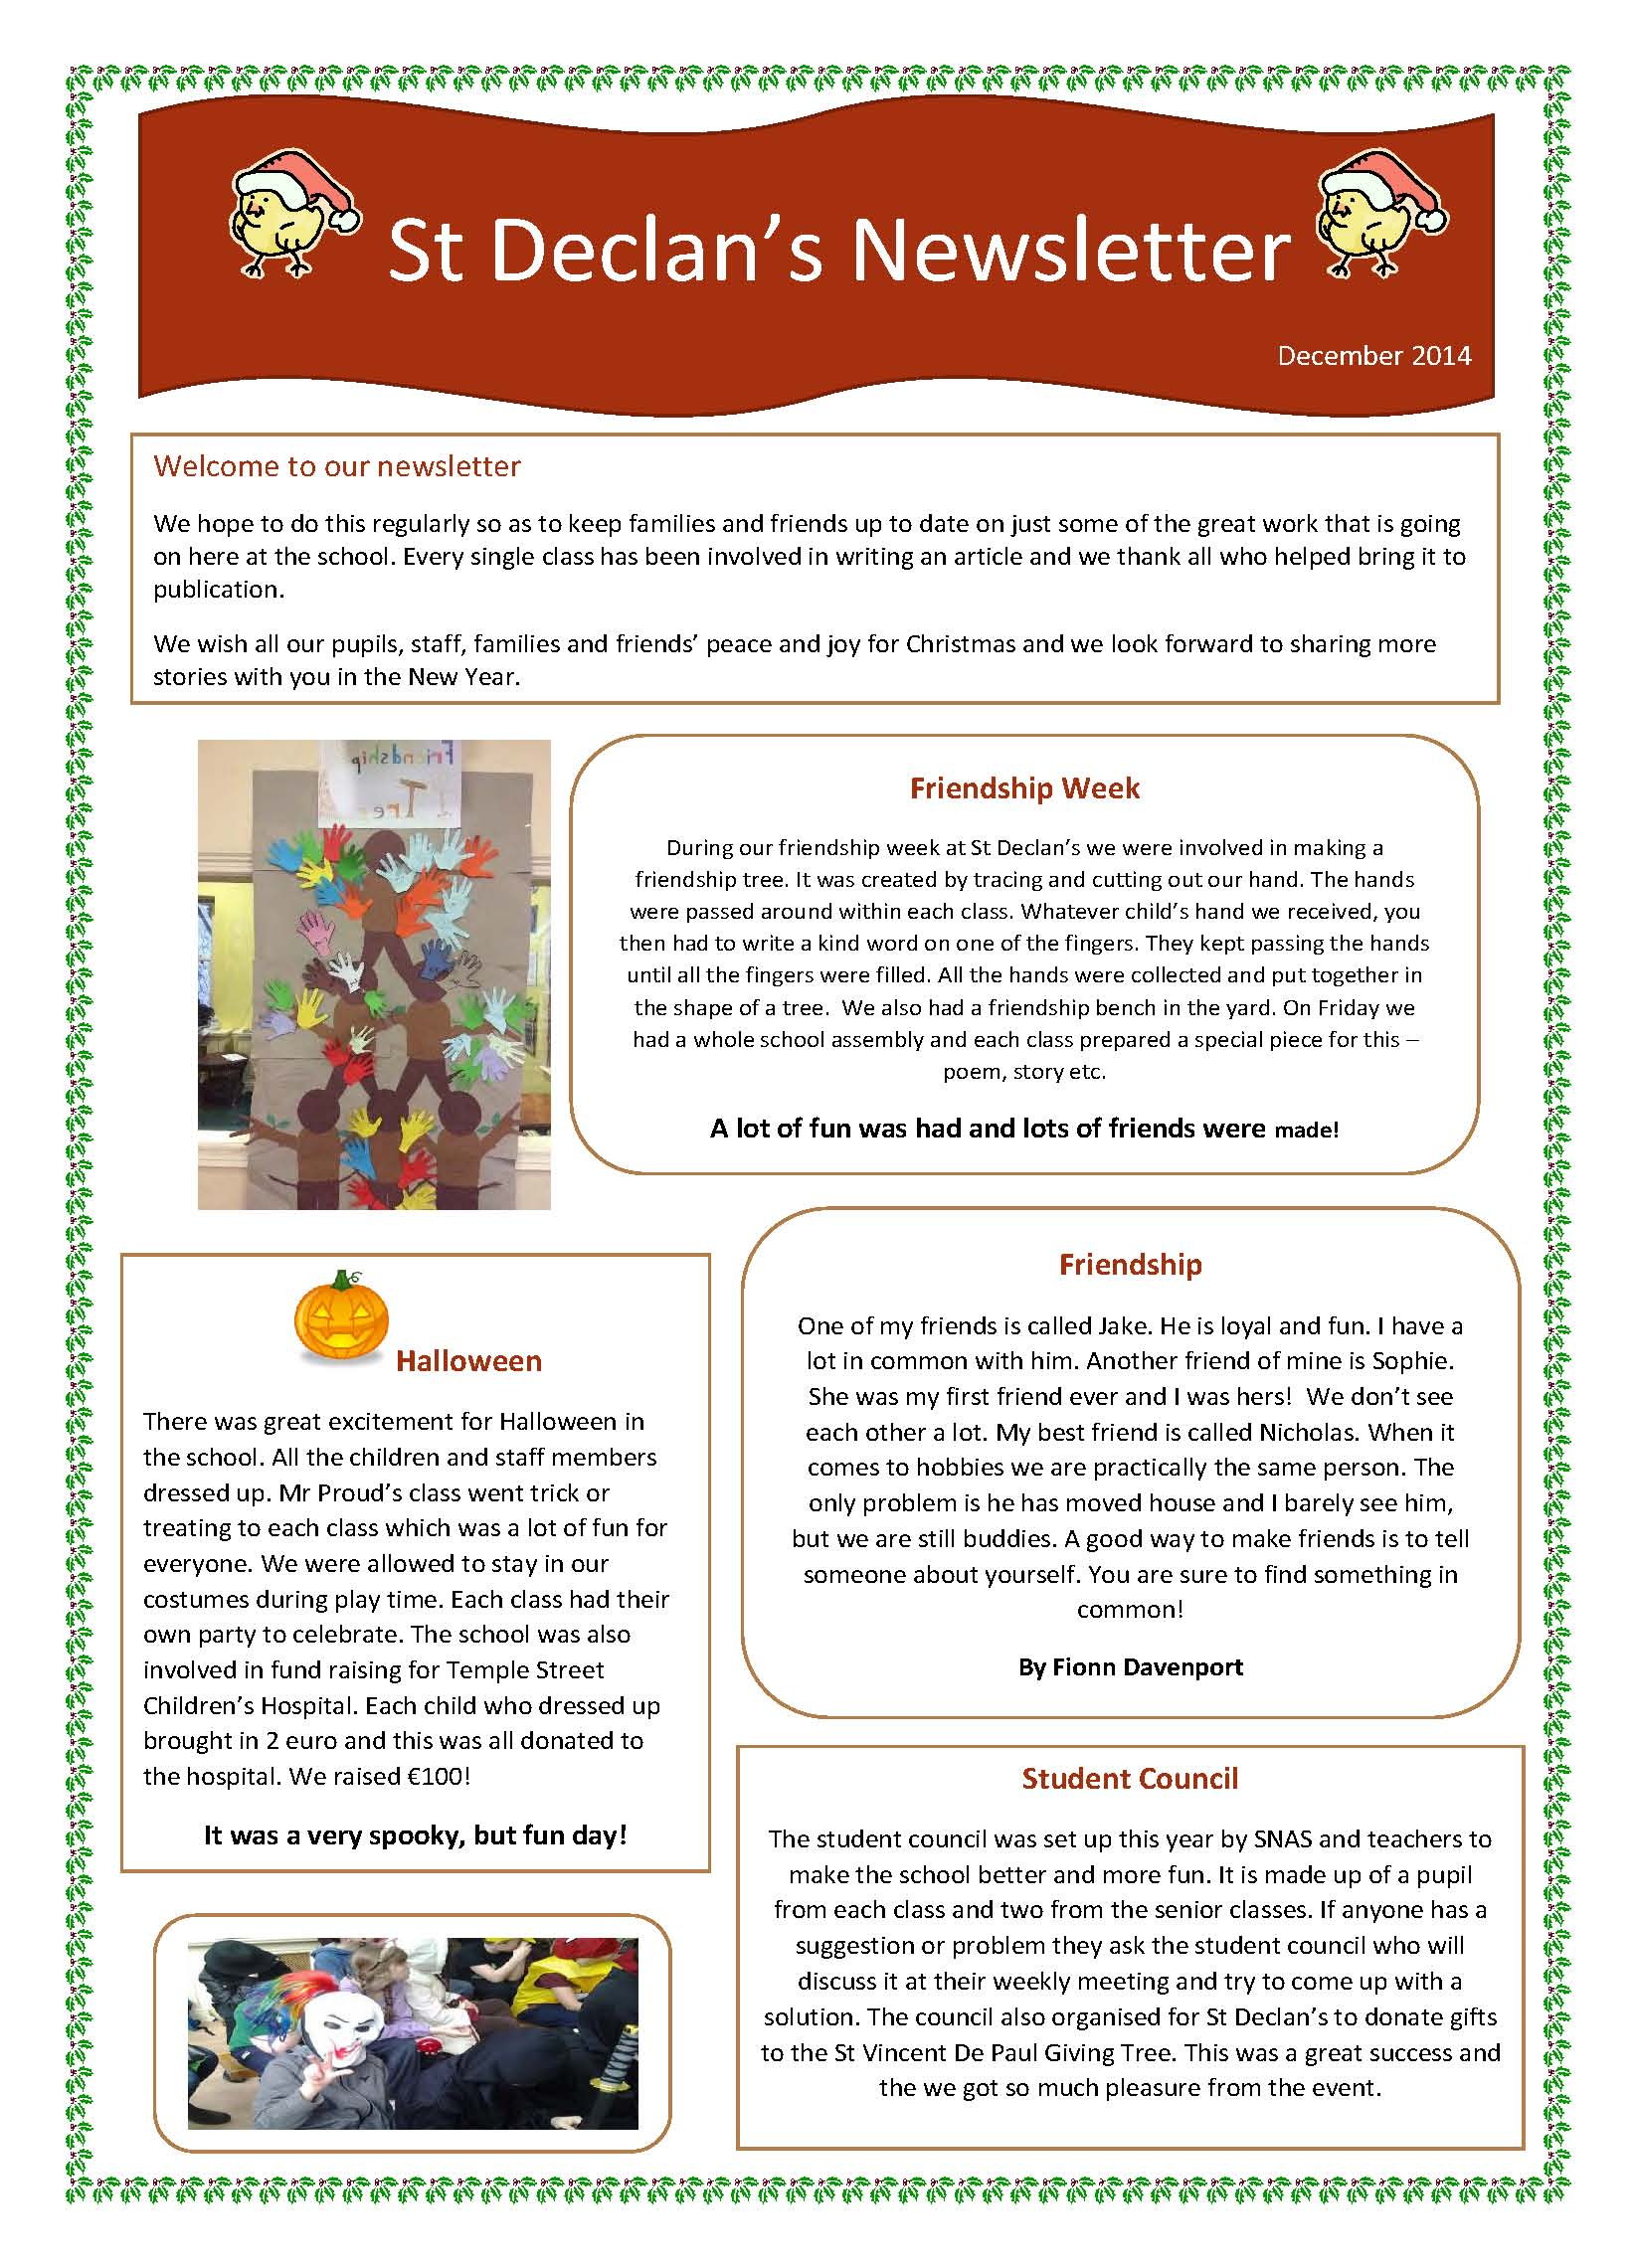 NewsletterChristmas2014 Page 1